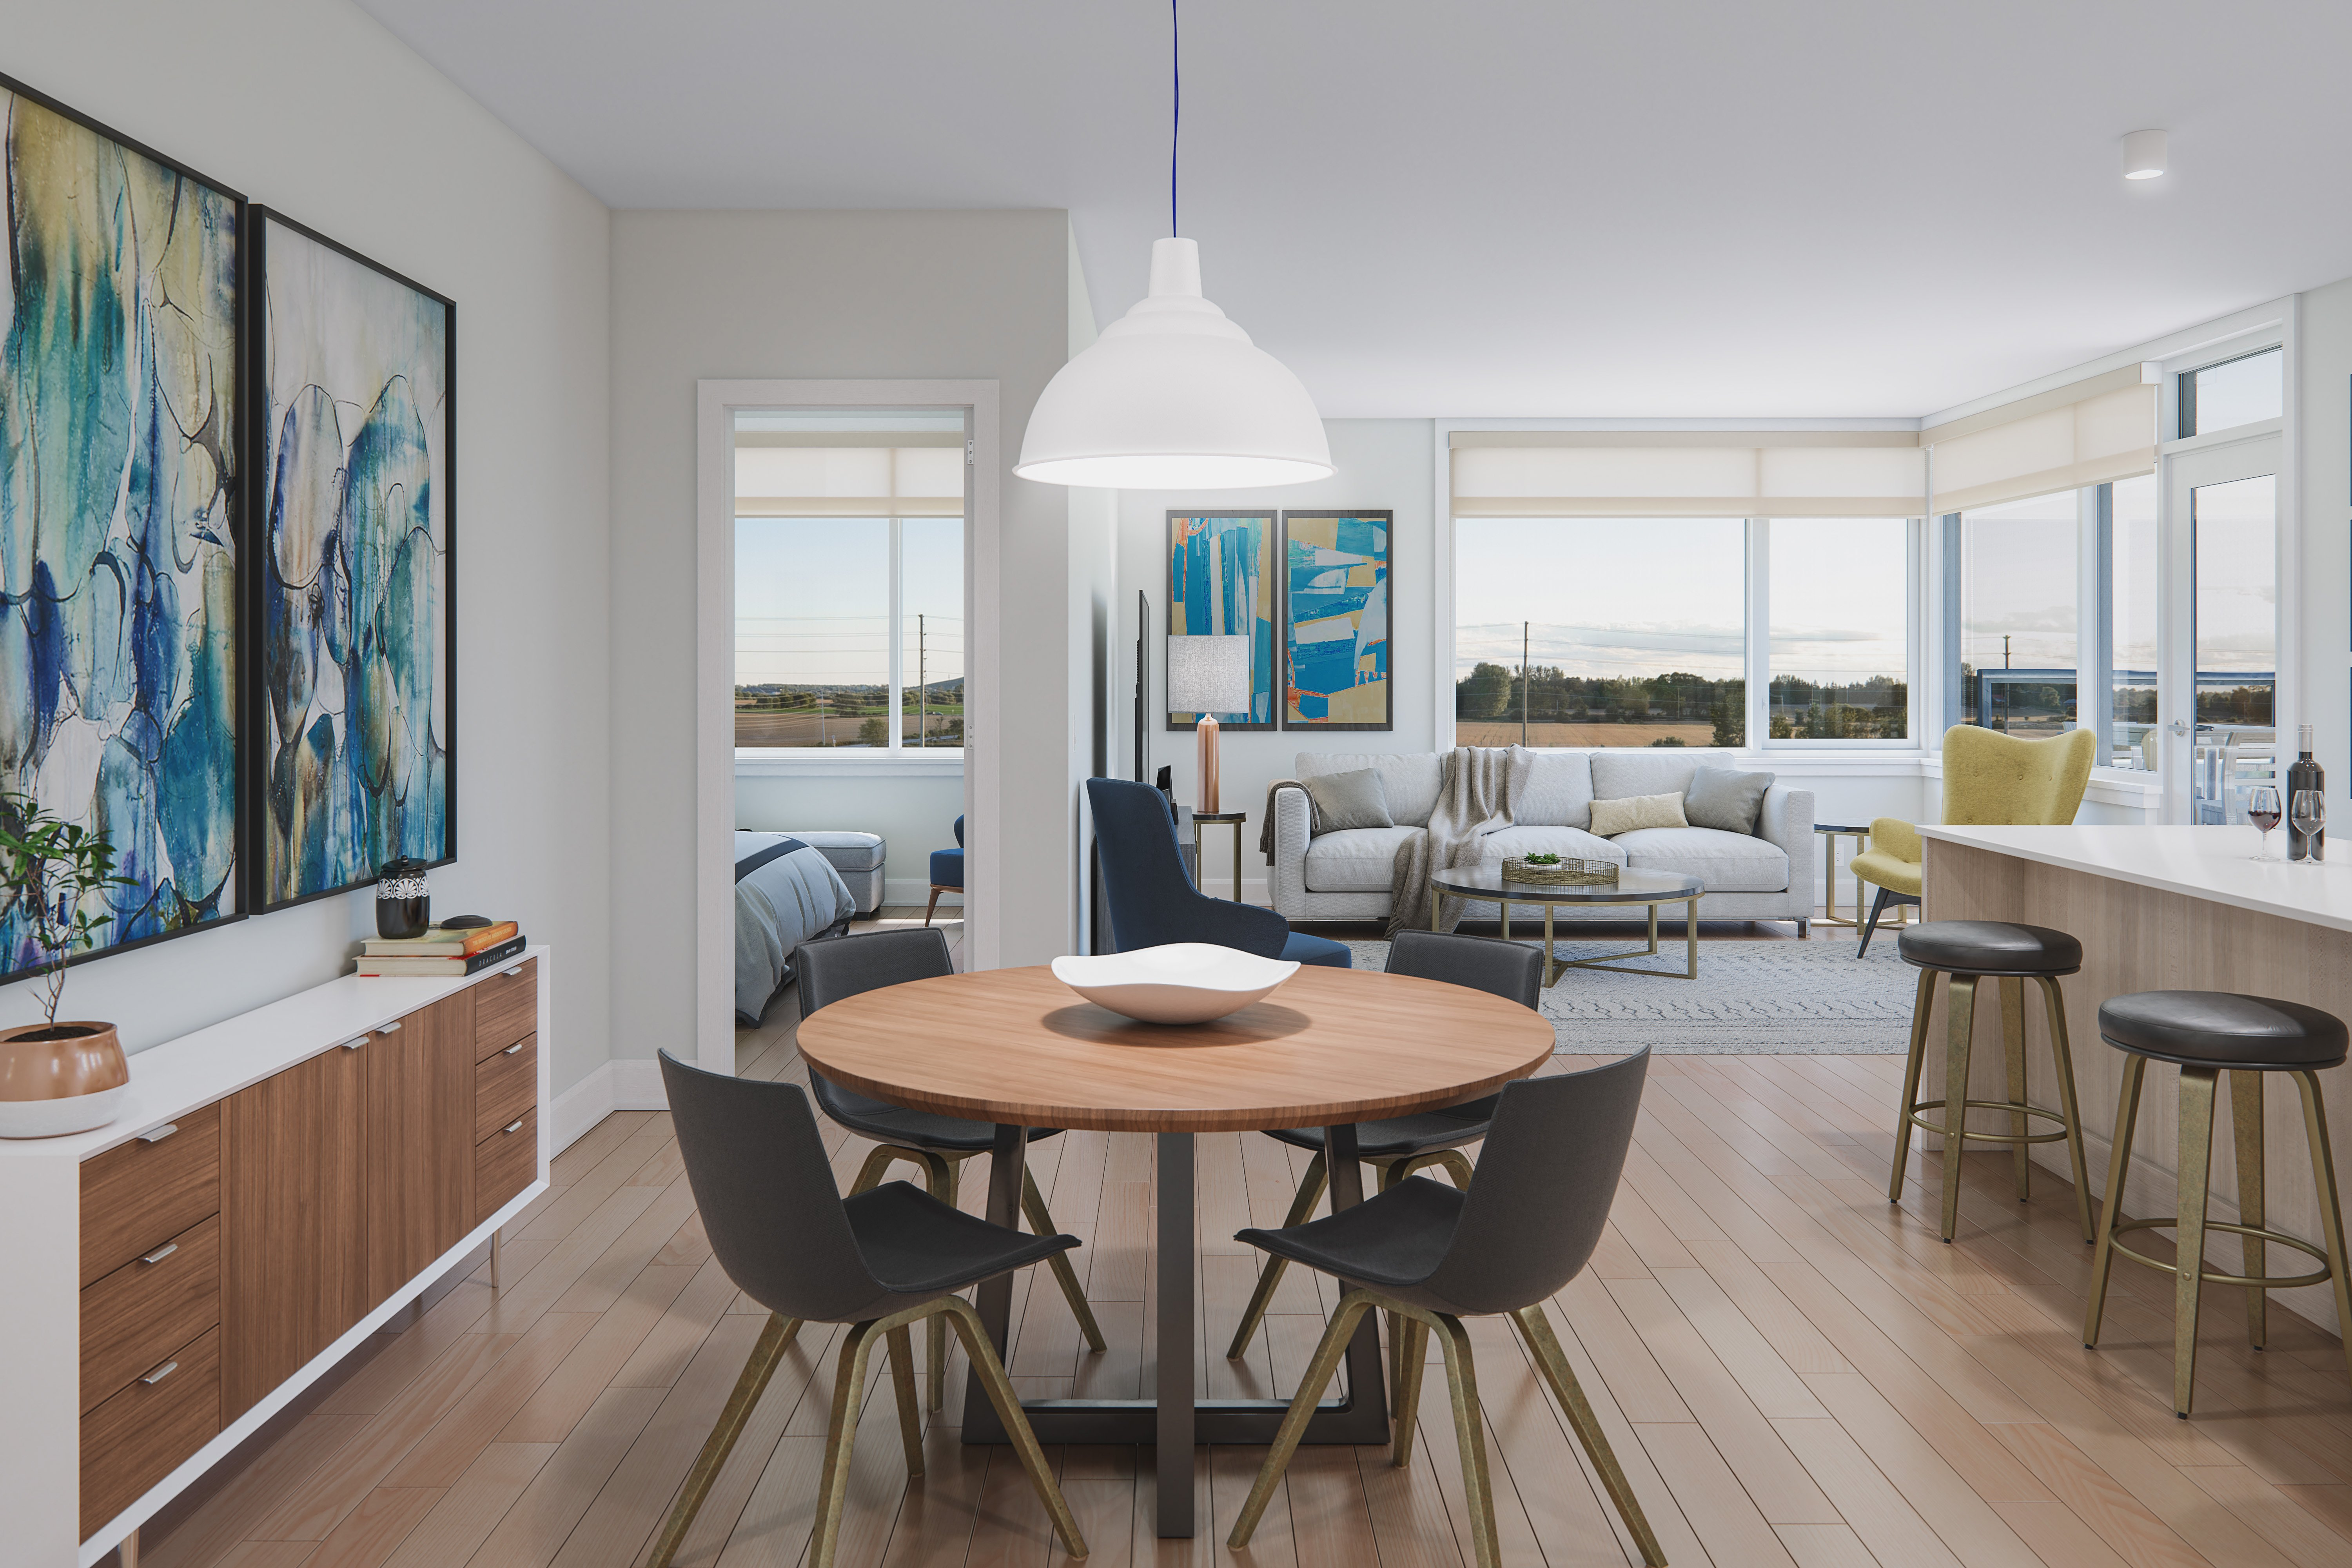 Dining area rendering in virtual tour